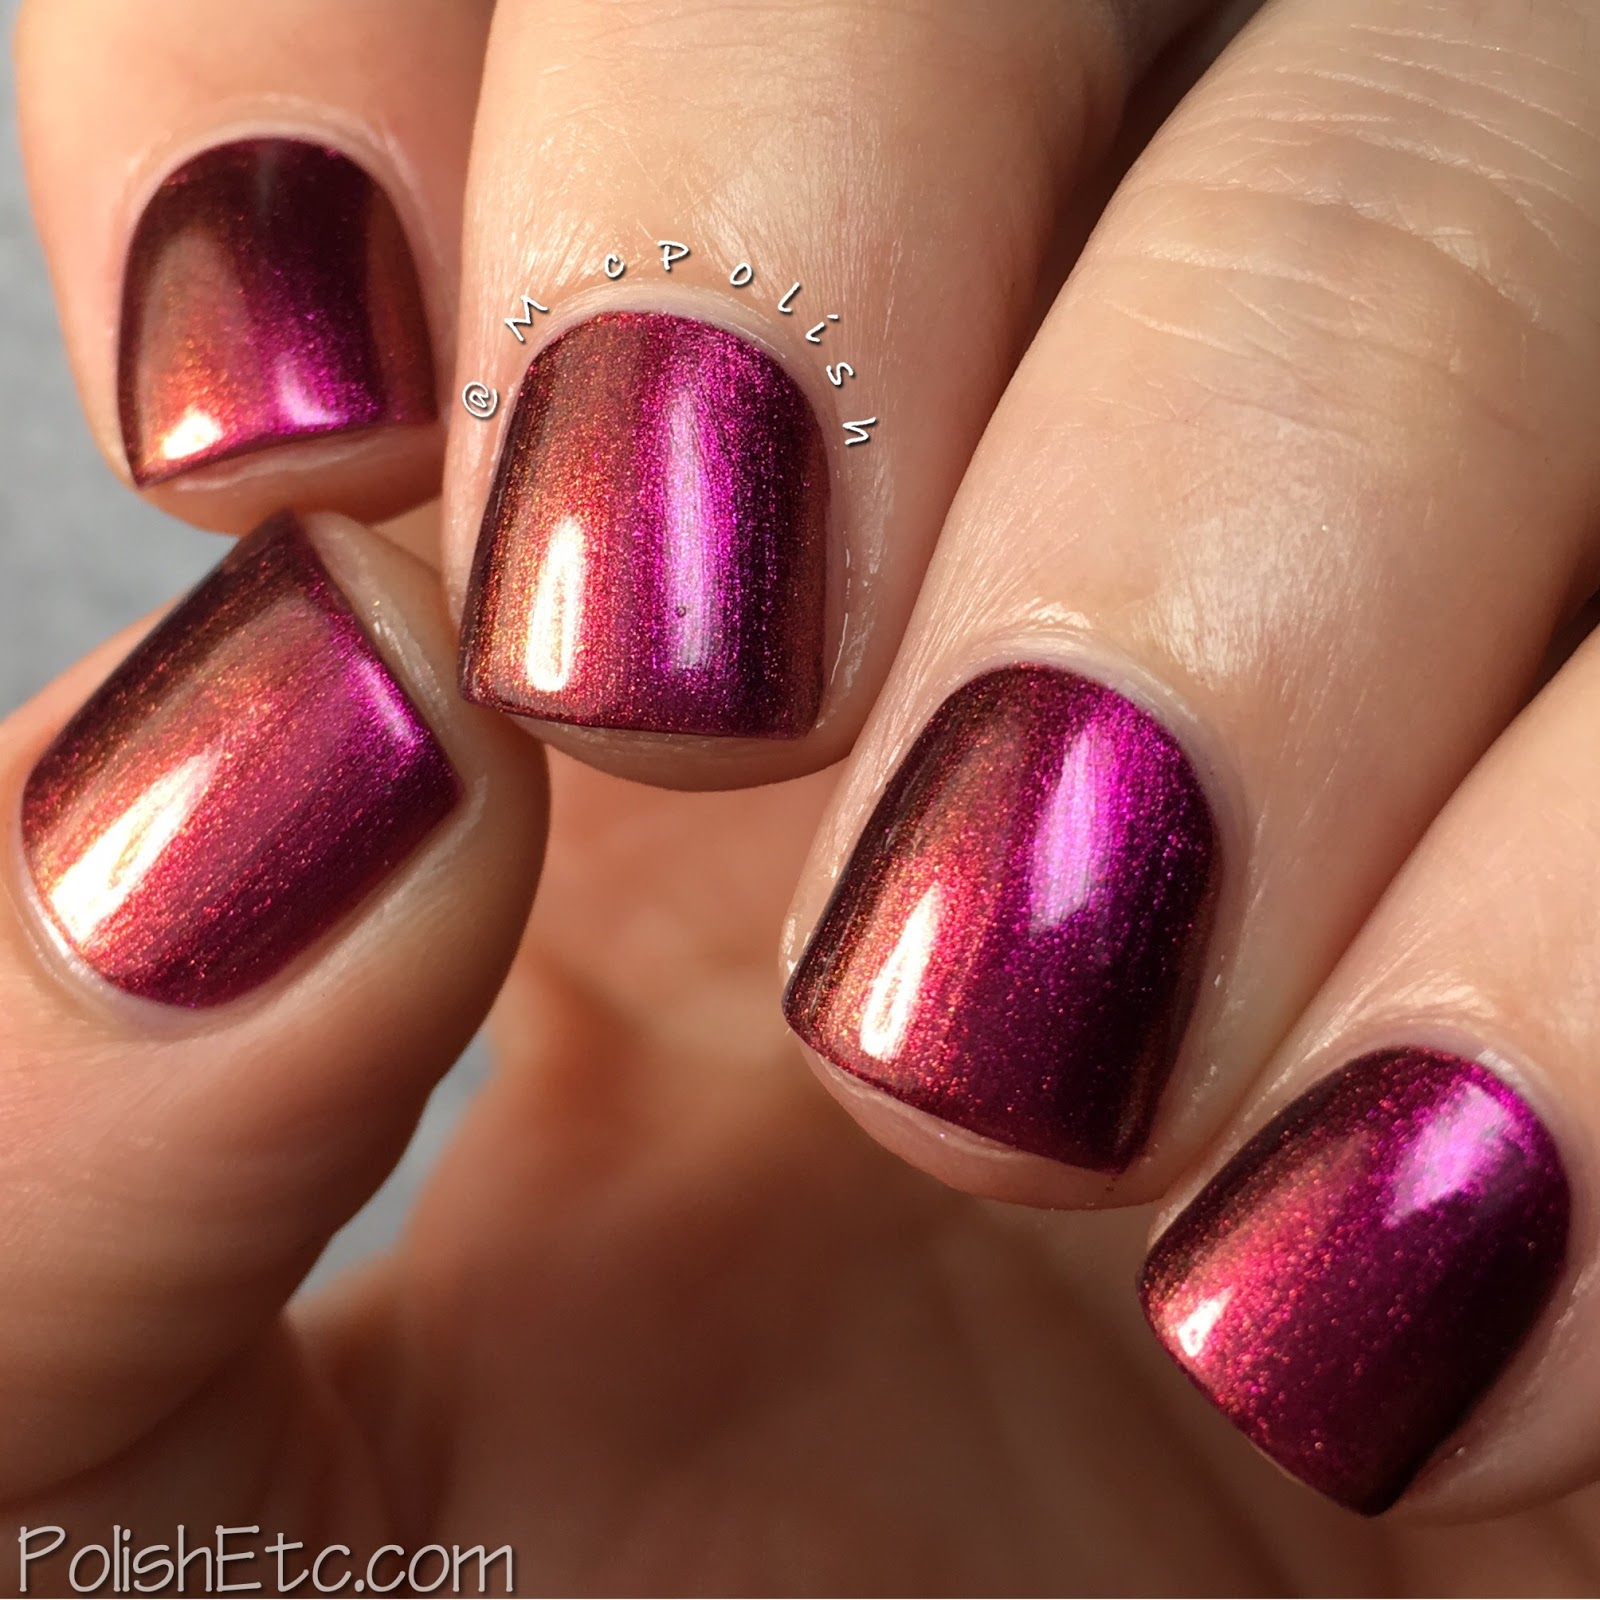 Great Lakes Lacquer - Polishing Poetic Collection - McPolish - A Handful of Dust